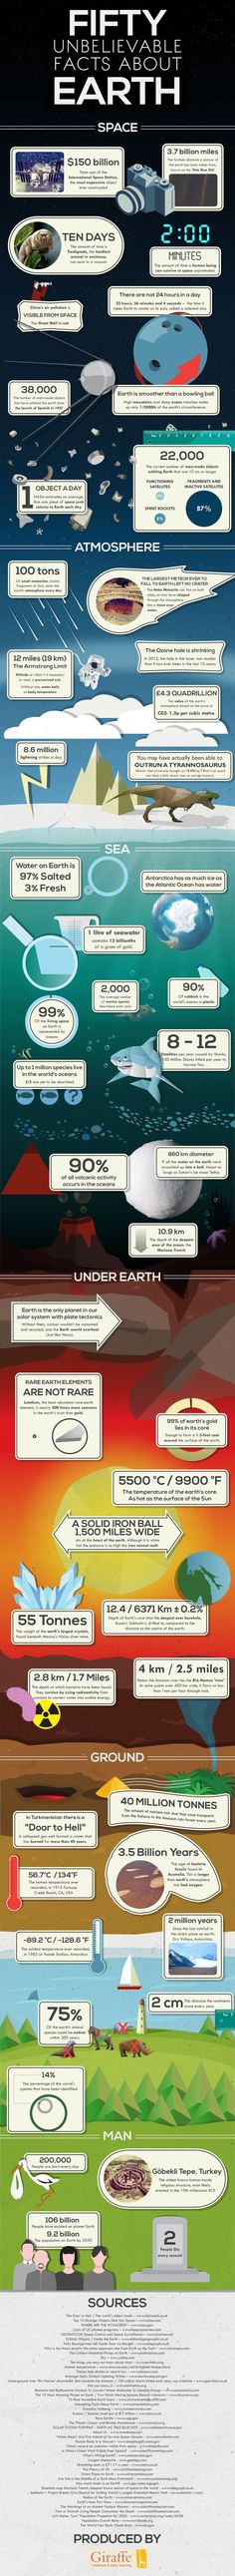 Amazing Facts About Earth (Infographic).  Useful as a poster, to share with students digitally, or as a model for students to make an infographic.